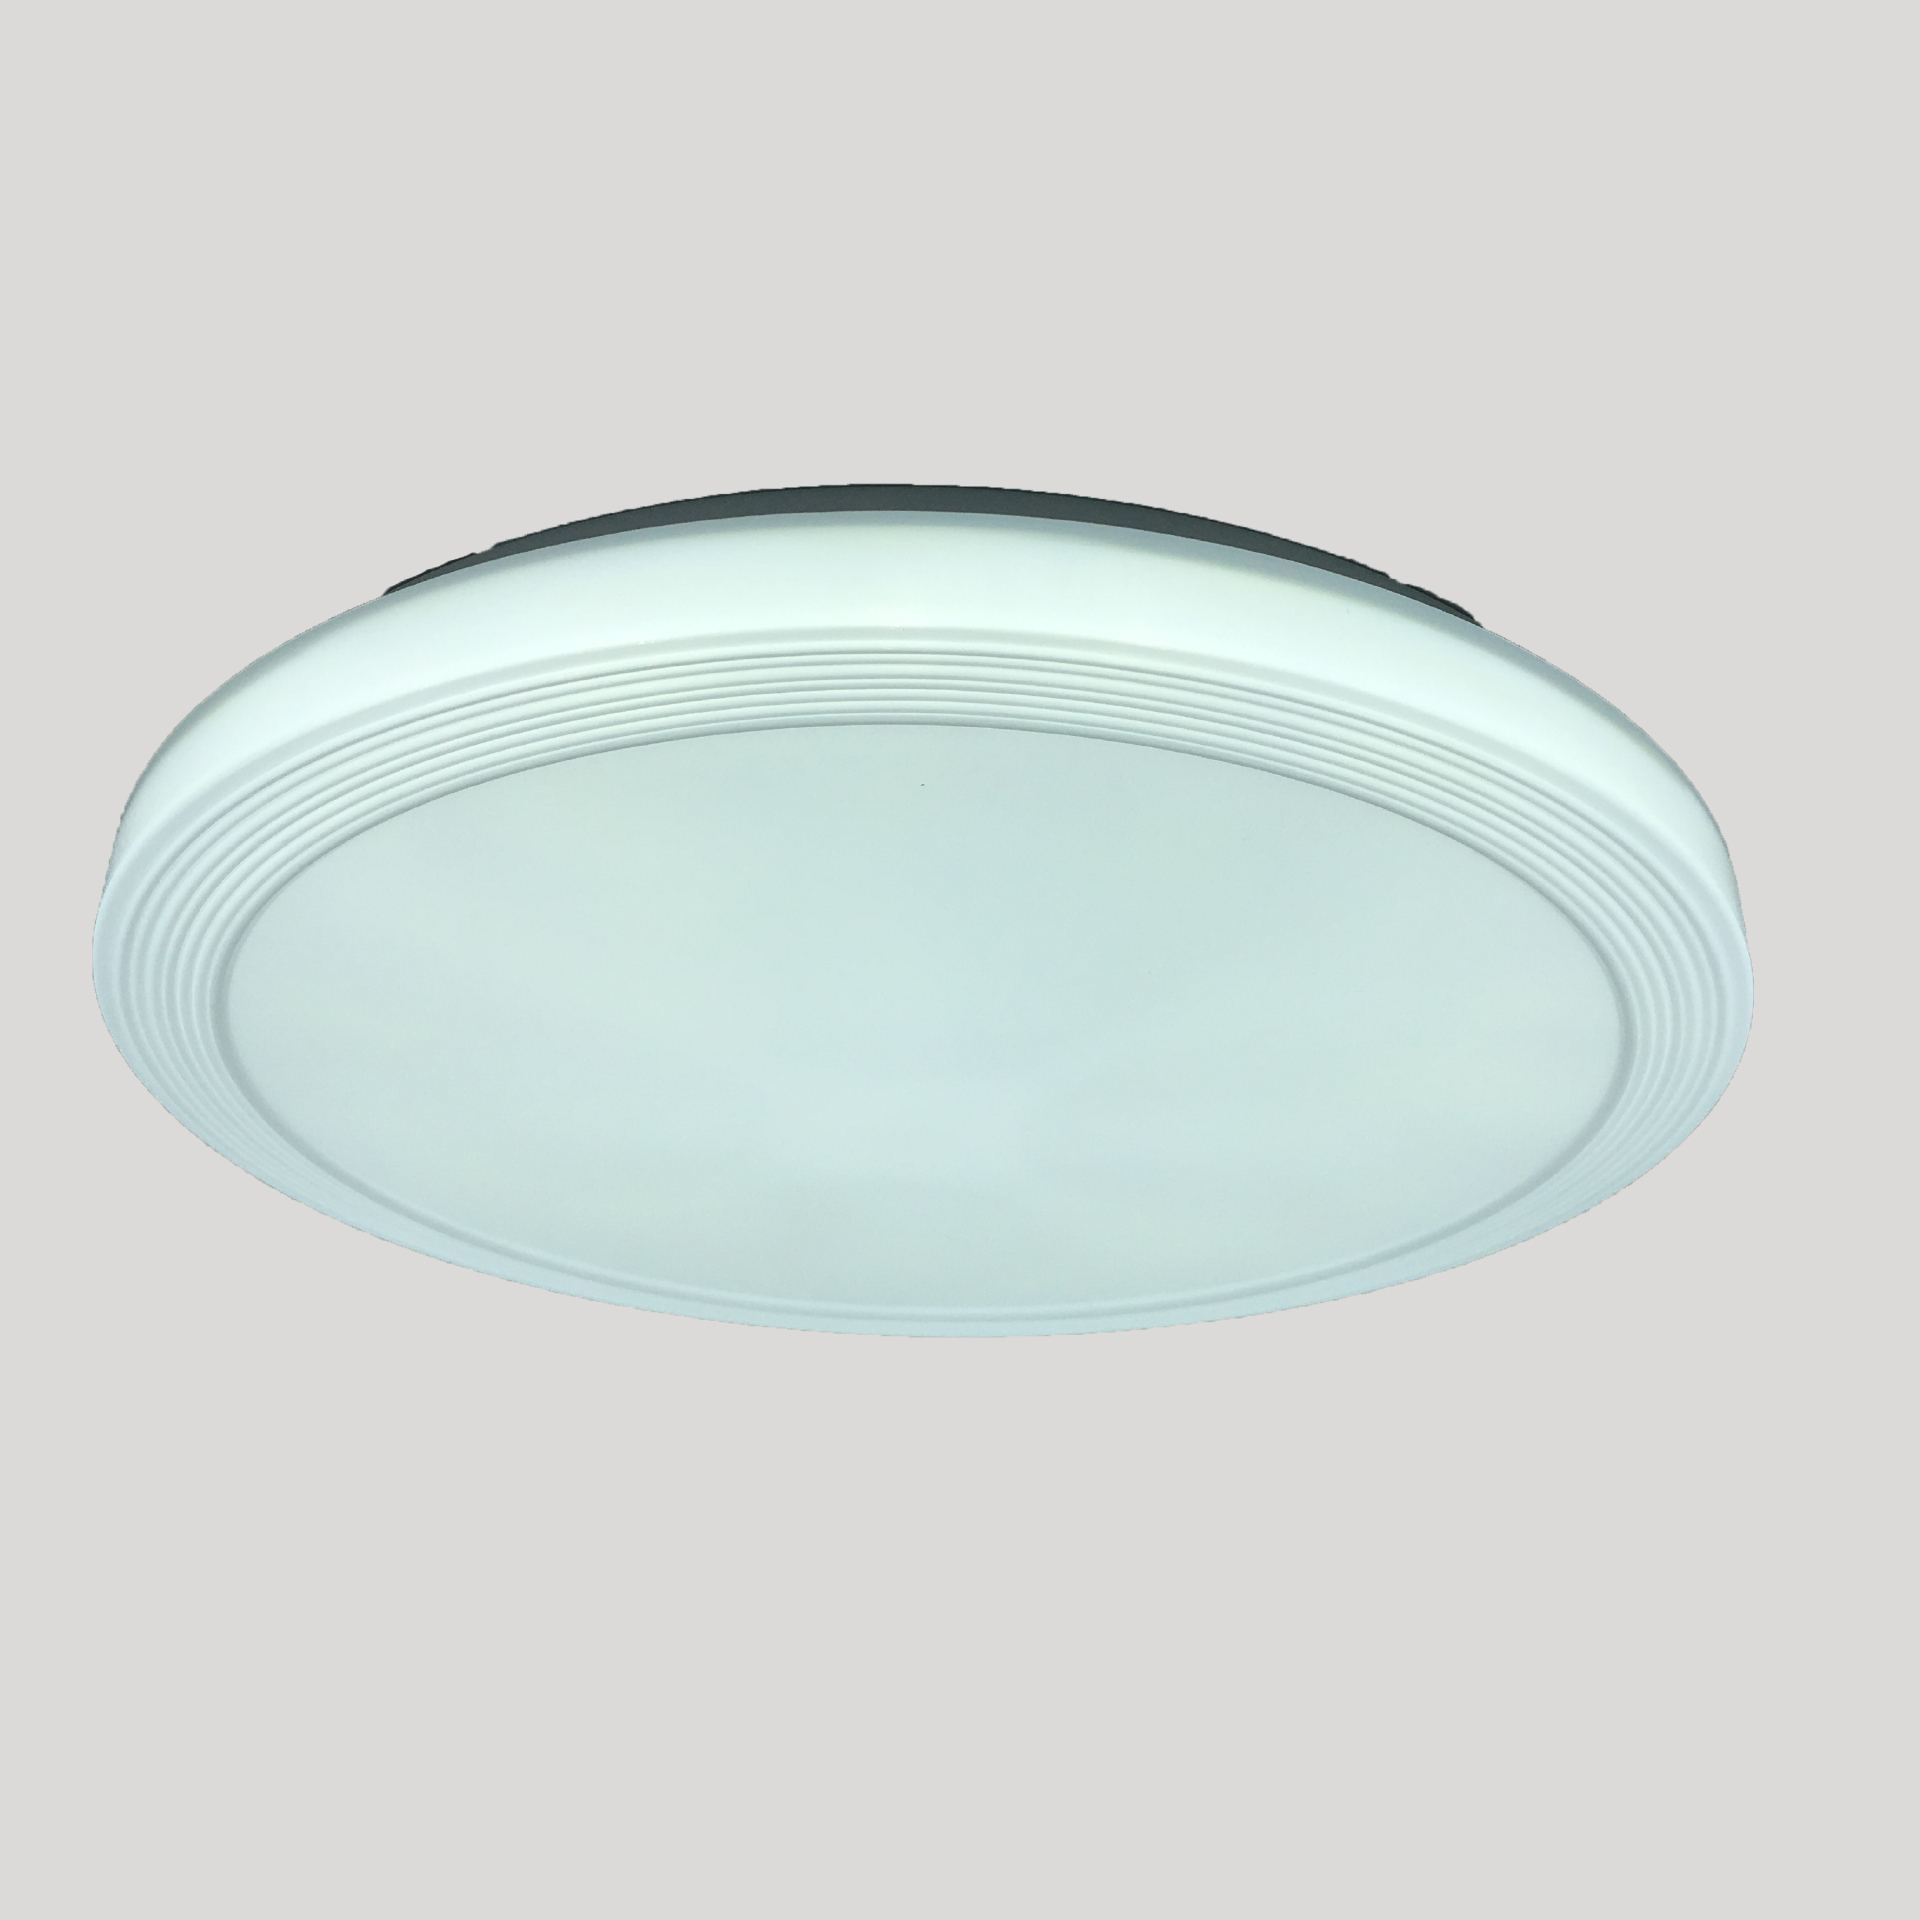 LED ceiling light simple white decoration kitchen stairs low